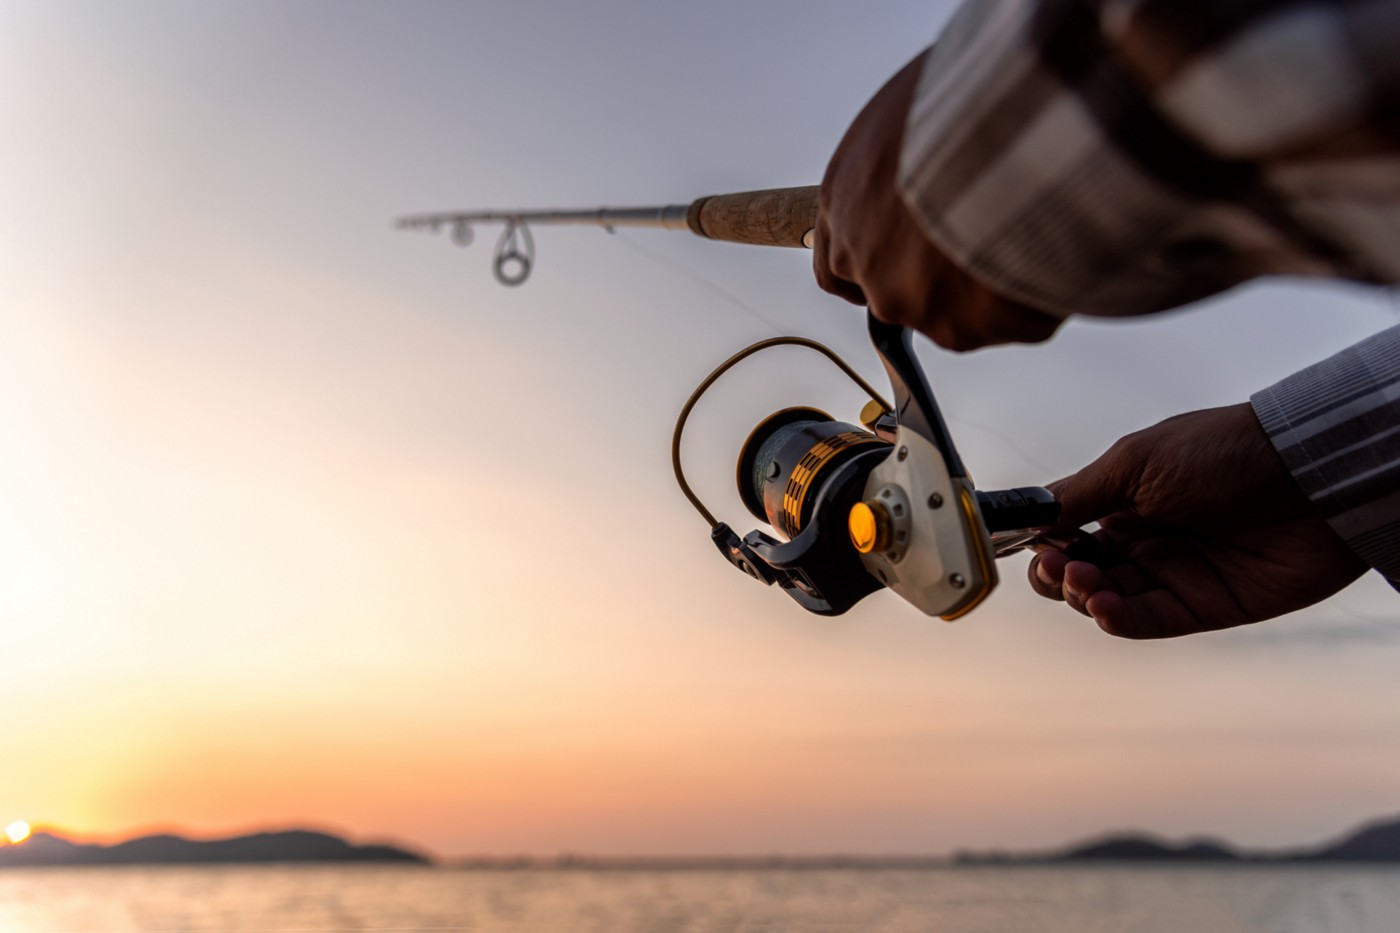 Hands holding a fishing rod and reel.